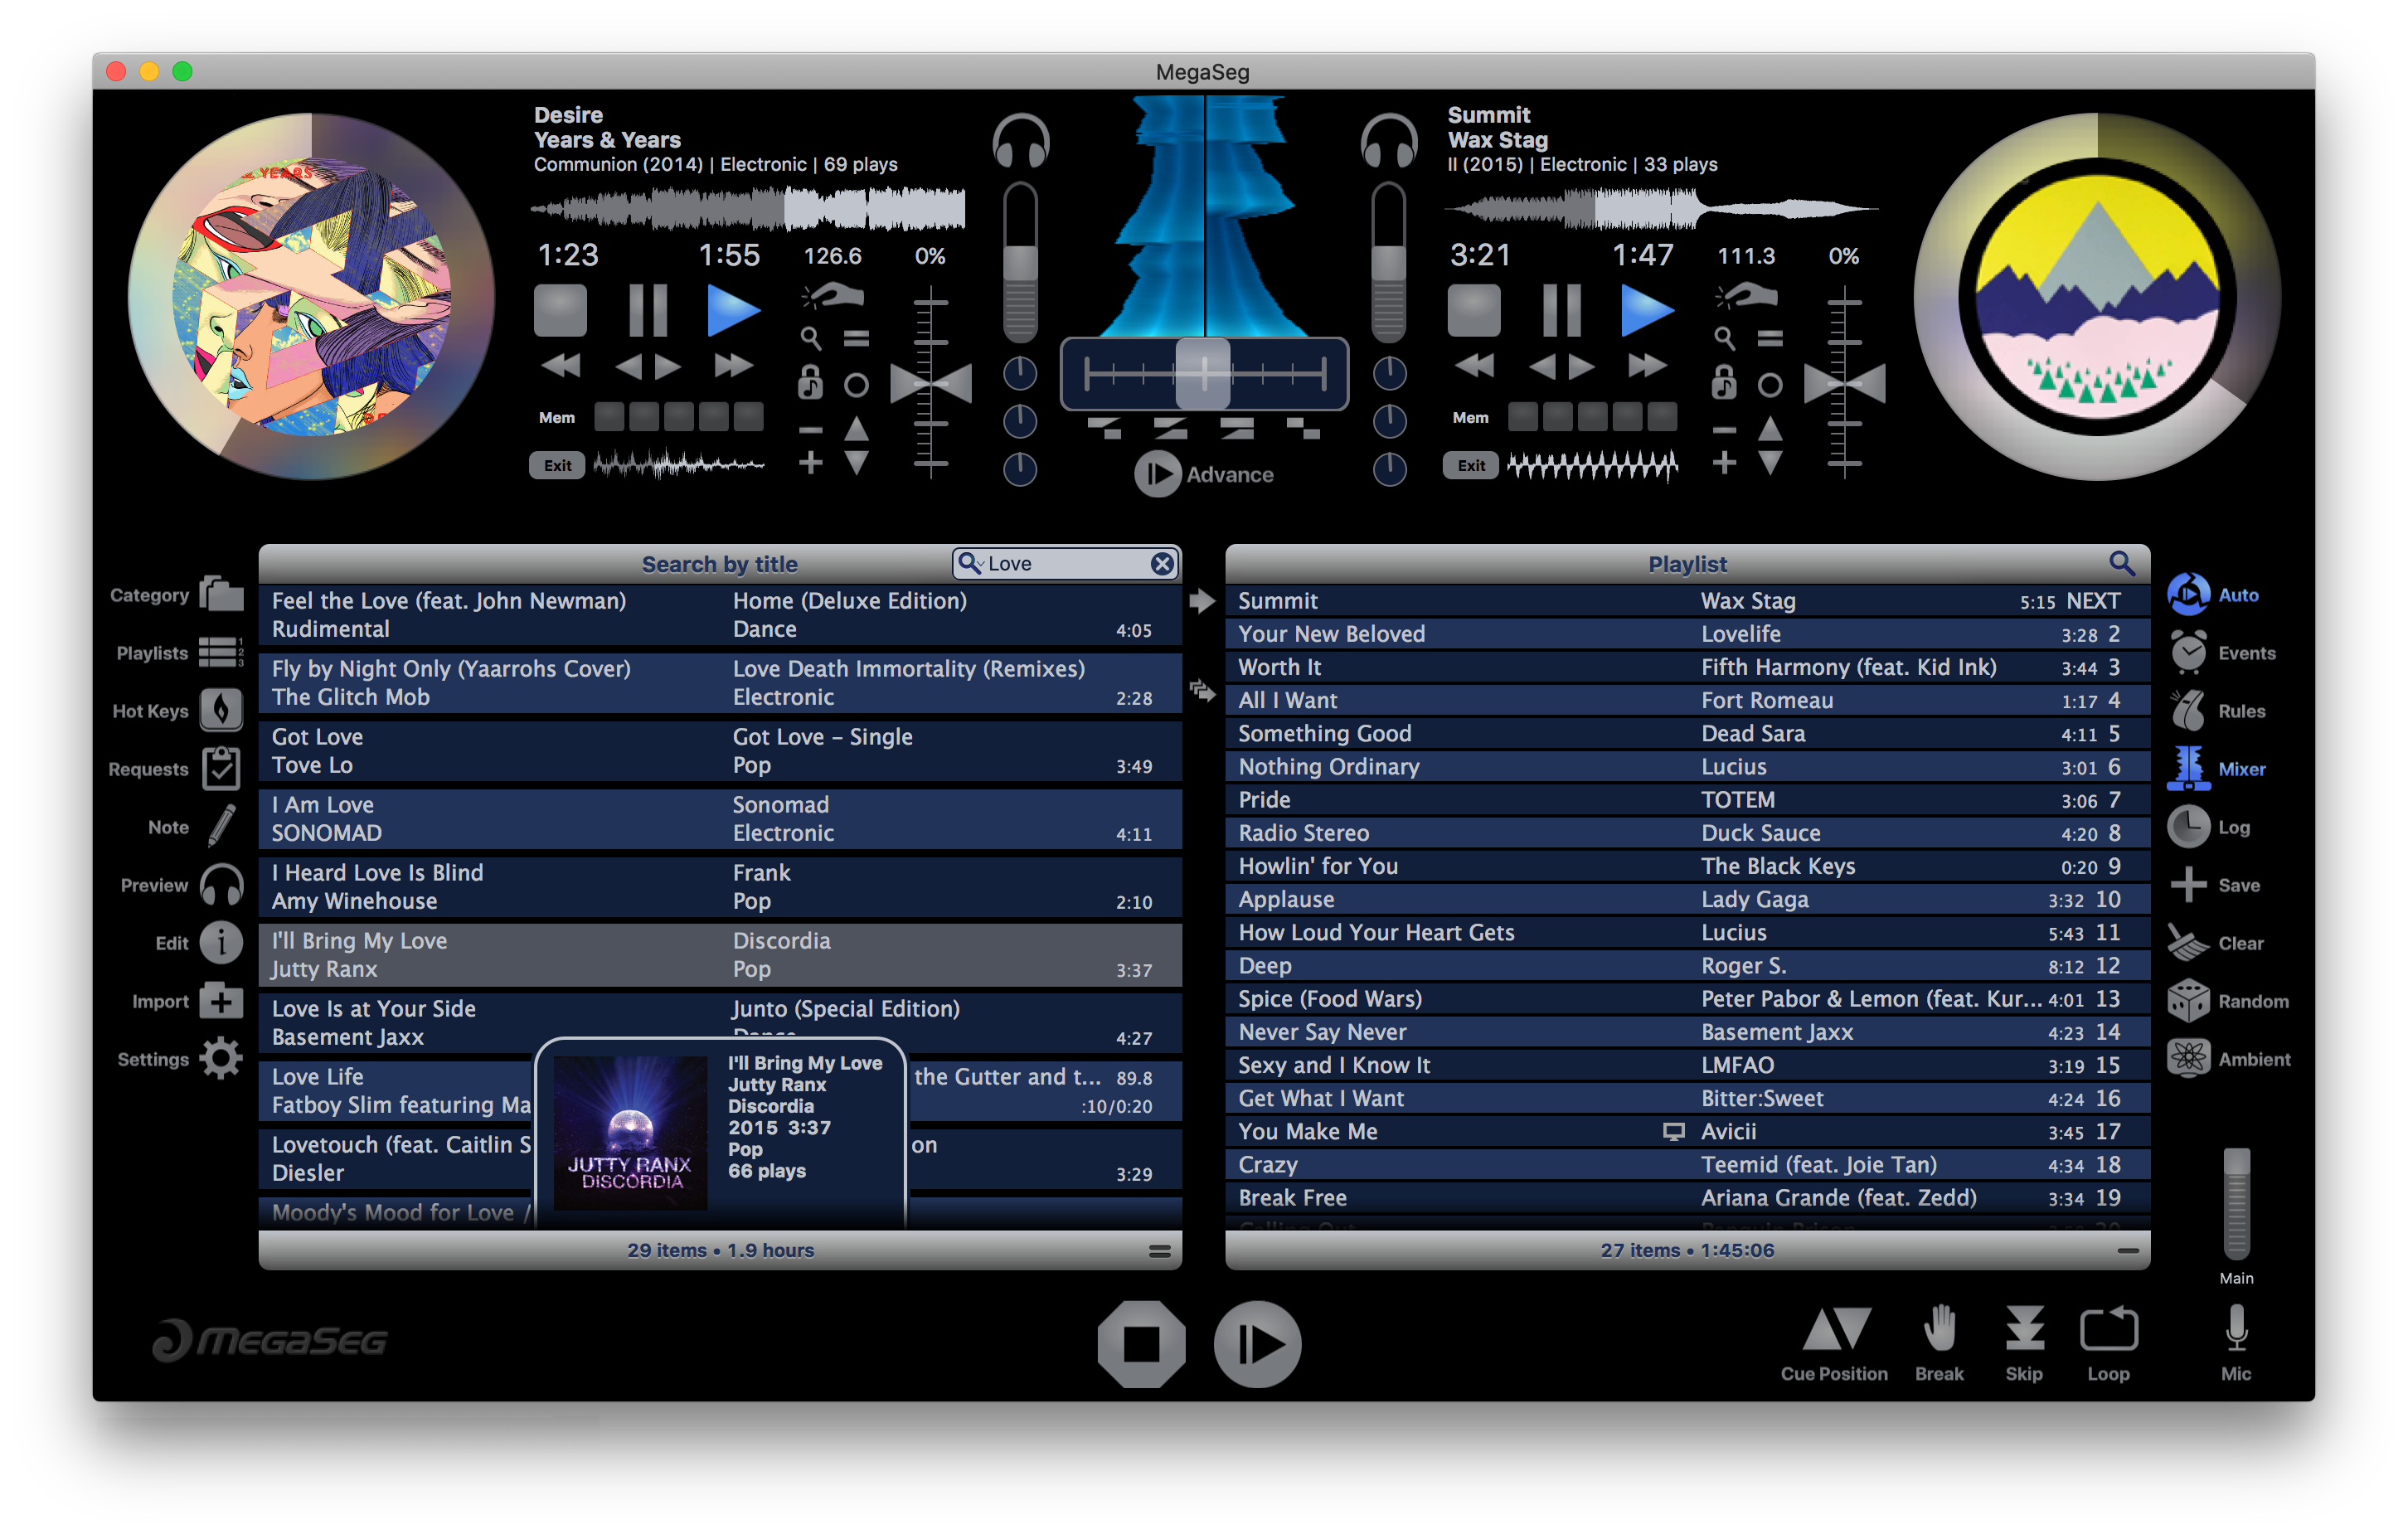 MegaSeg DJ 6.1 update released for macOS Catalina and the new Music app Image